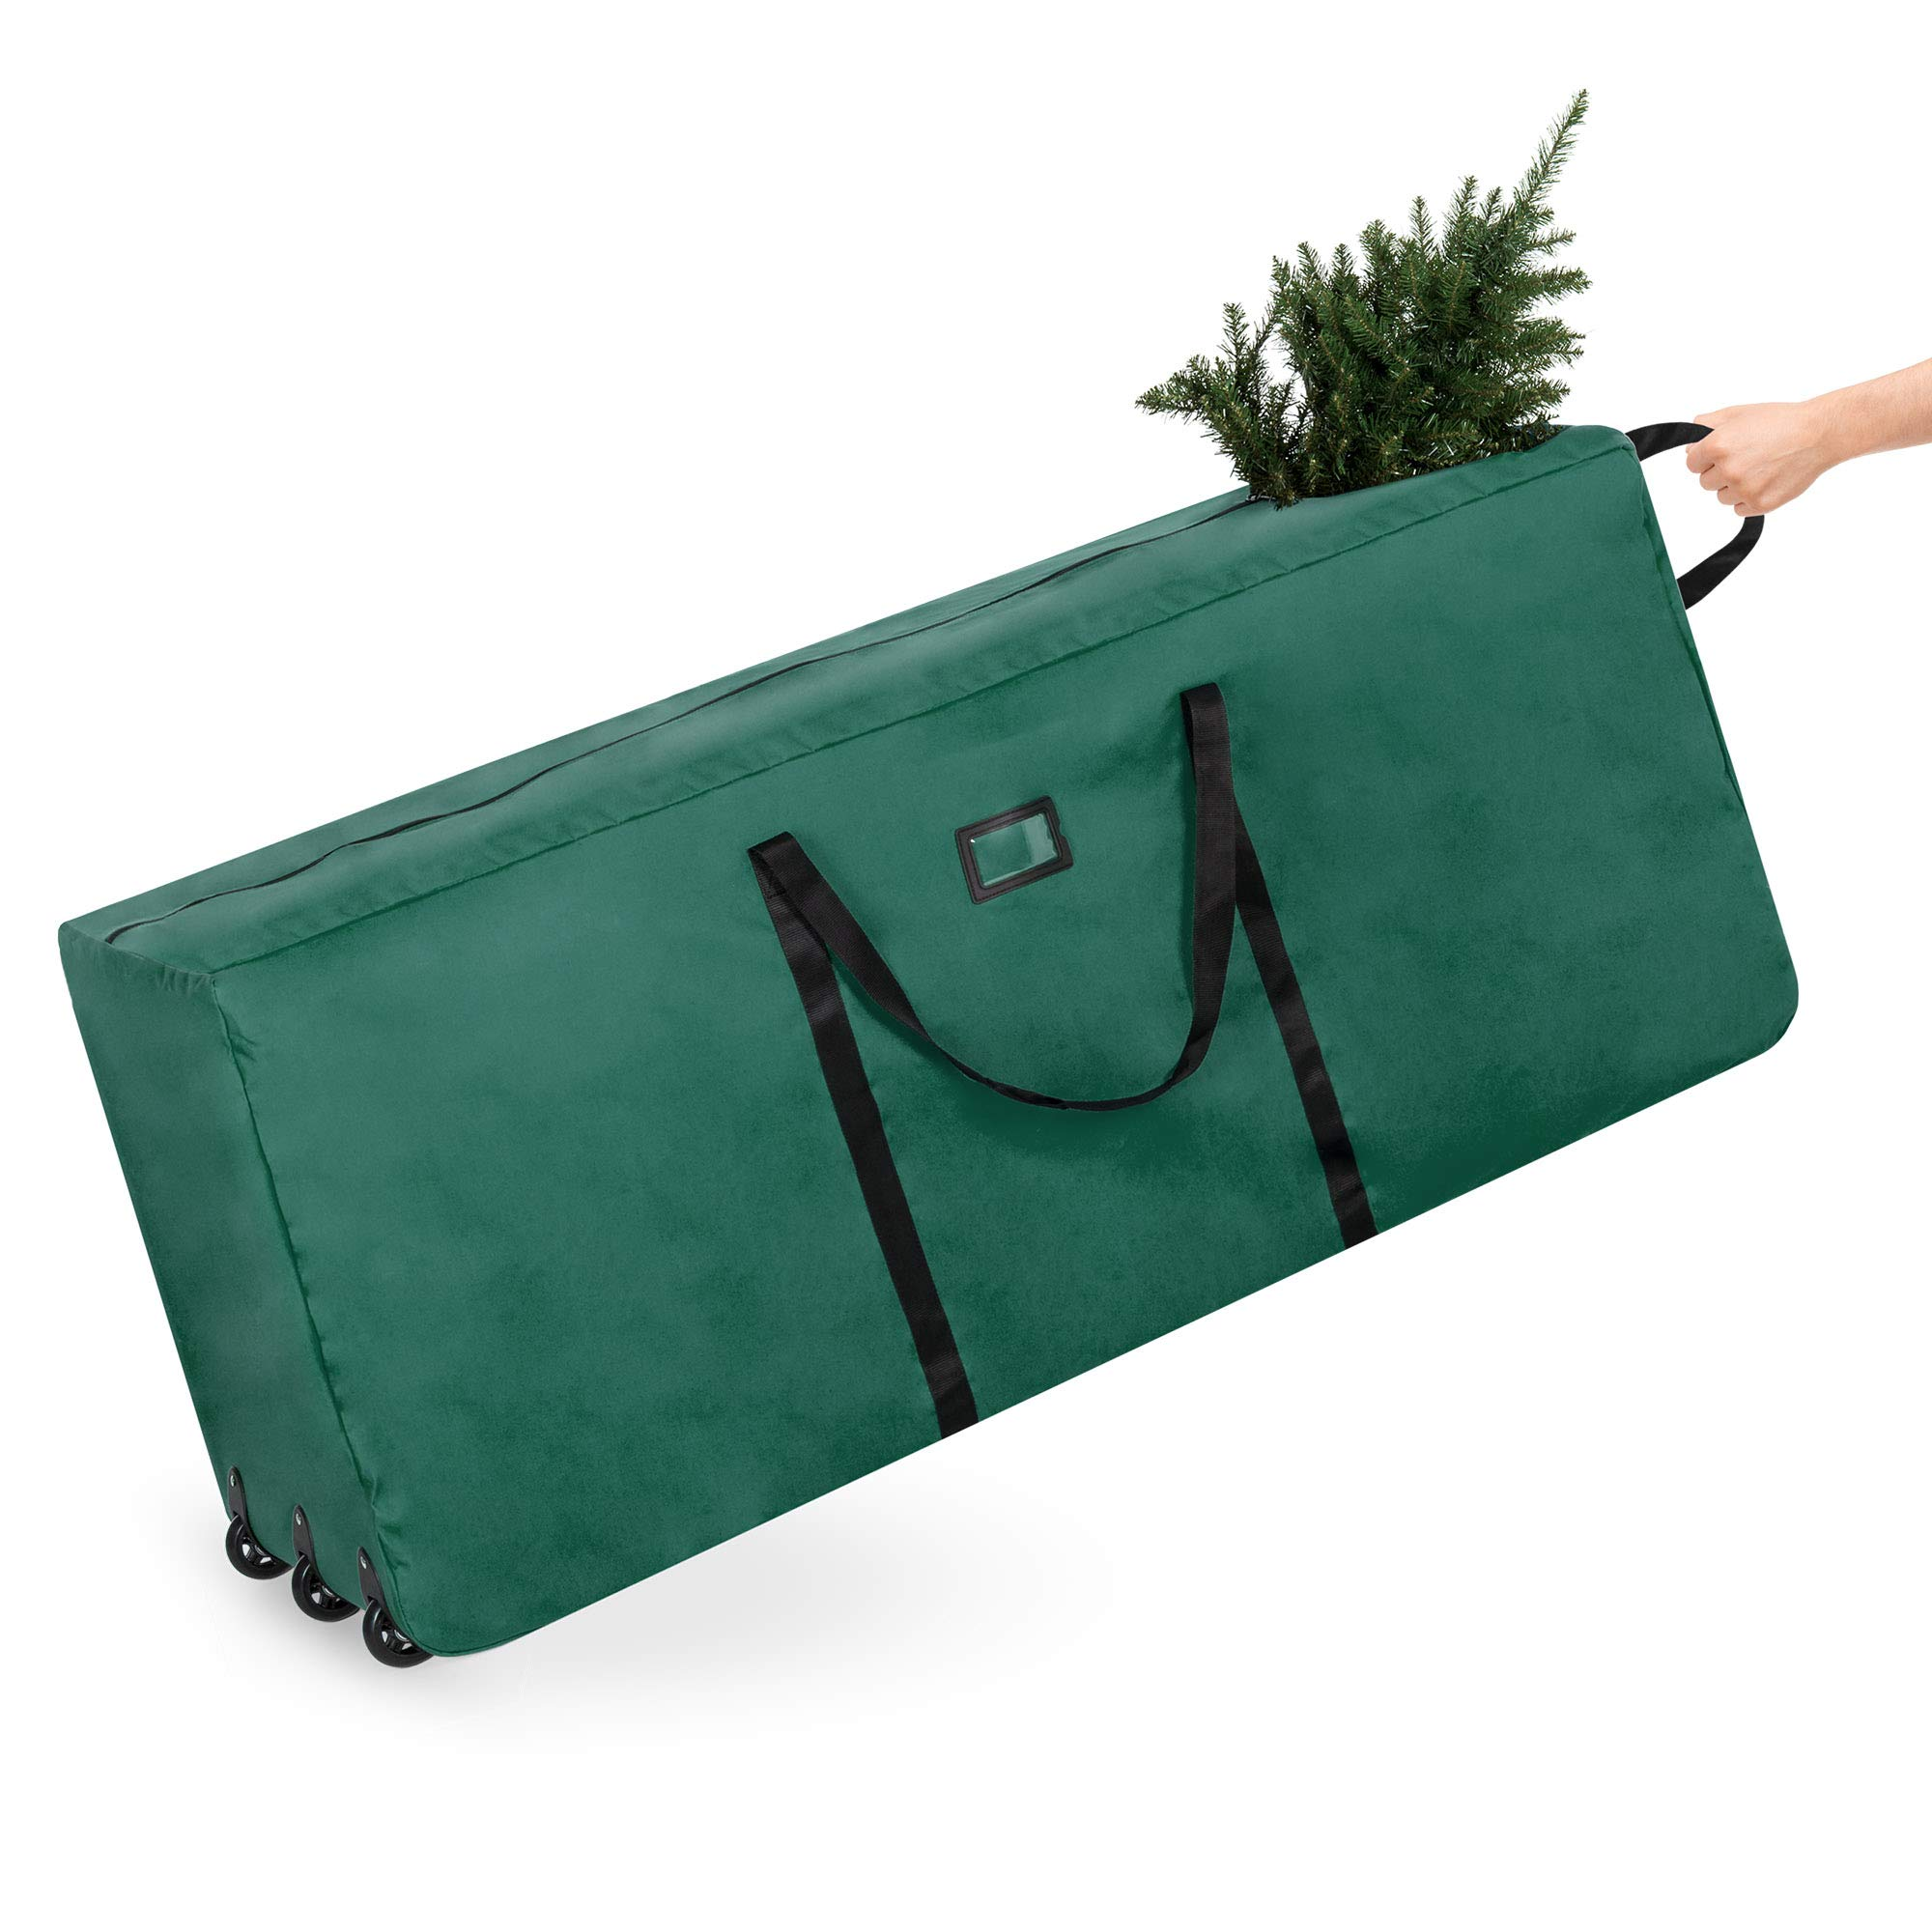 Best Choice Products 600D Polyester Rolling Duffel Storage Bag for Up To 9ft Christmas Tree w/Handle, Green by Best Choice Products